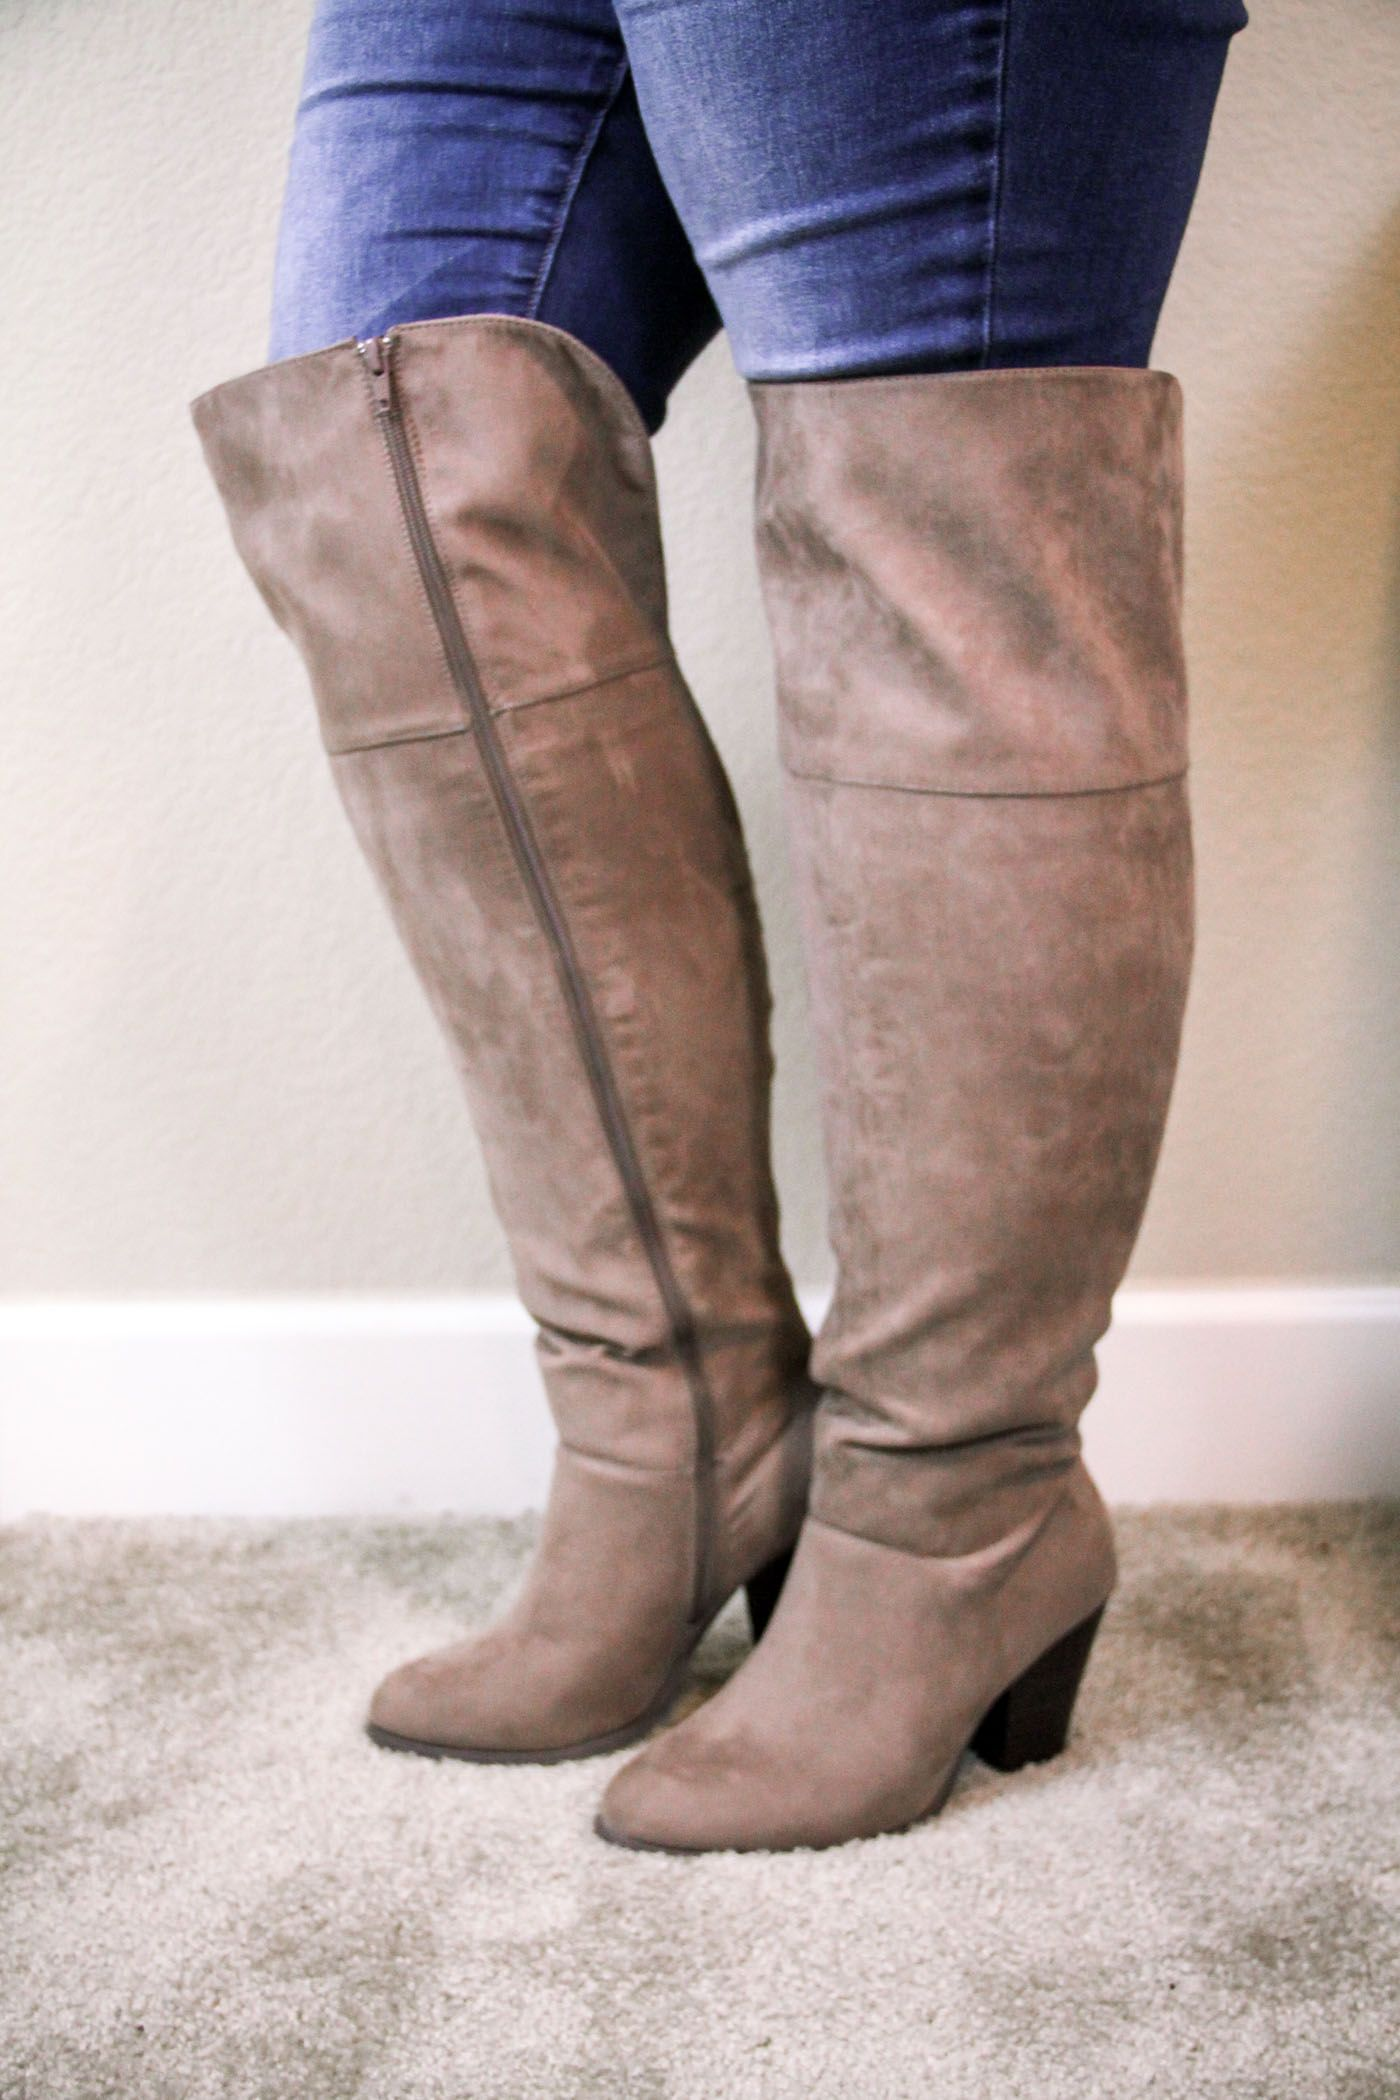 612e0b00b4c Wide Calf boot guide 2016 - Best Boots for Wide Calves | Clothes and ...